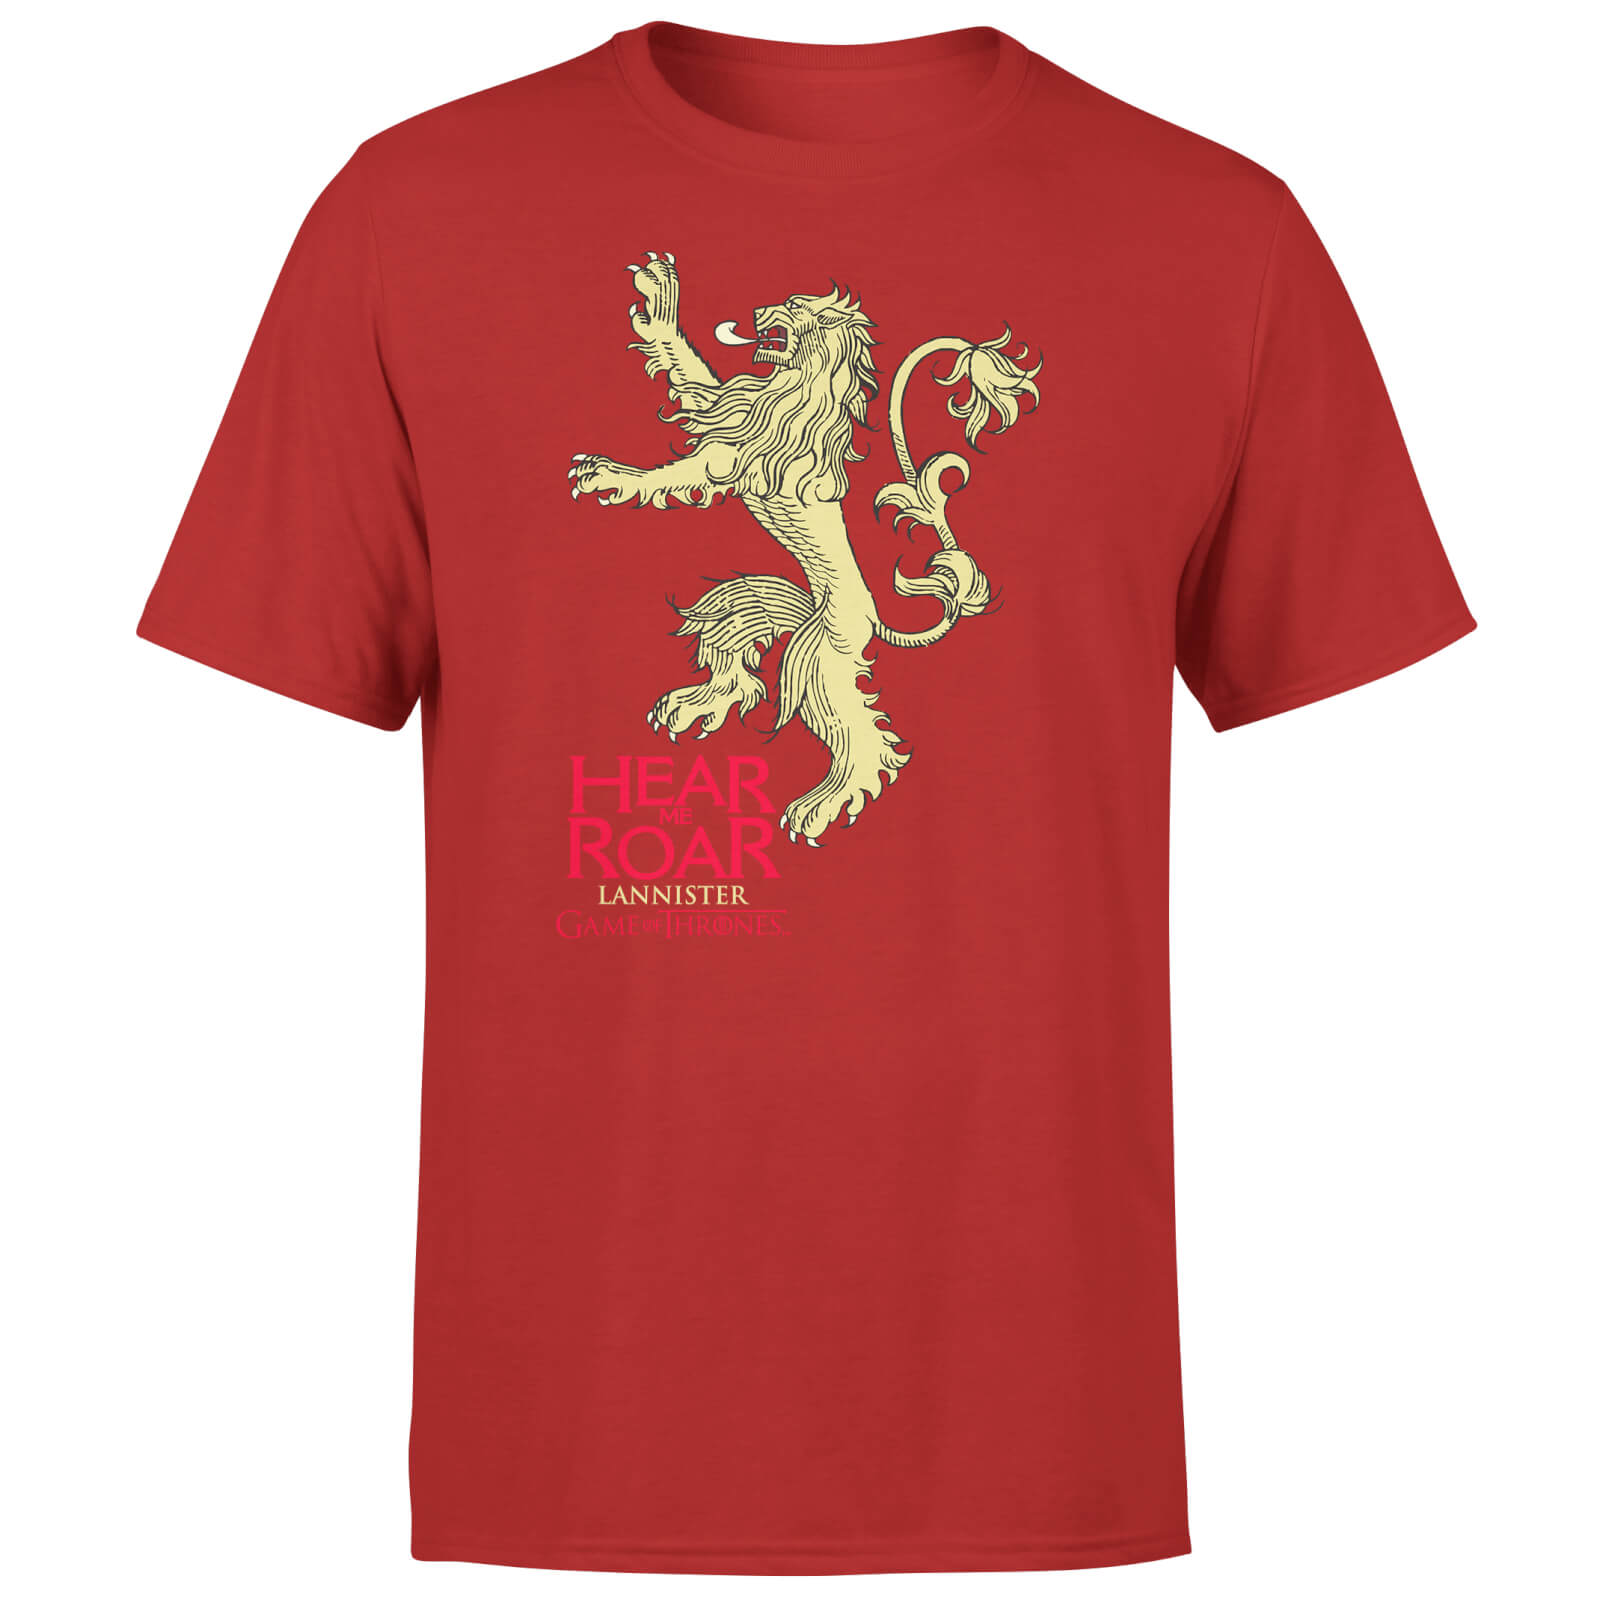 Game of Thrones Lannister Hear Me Roar Men